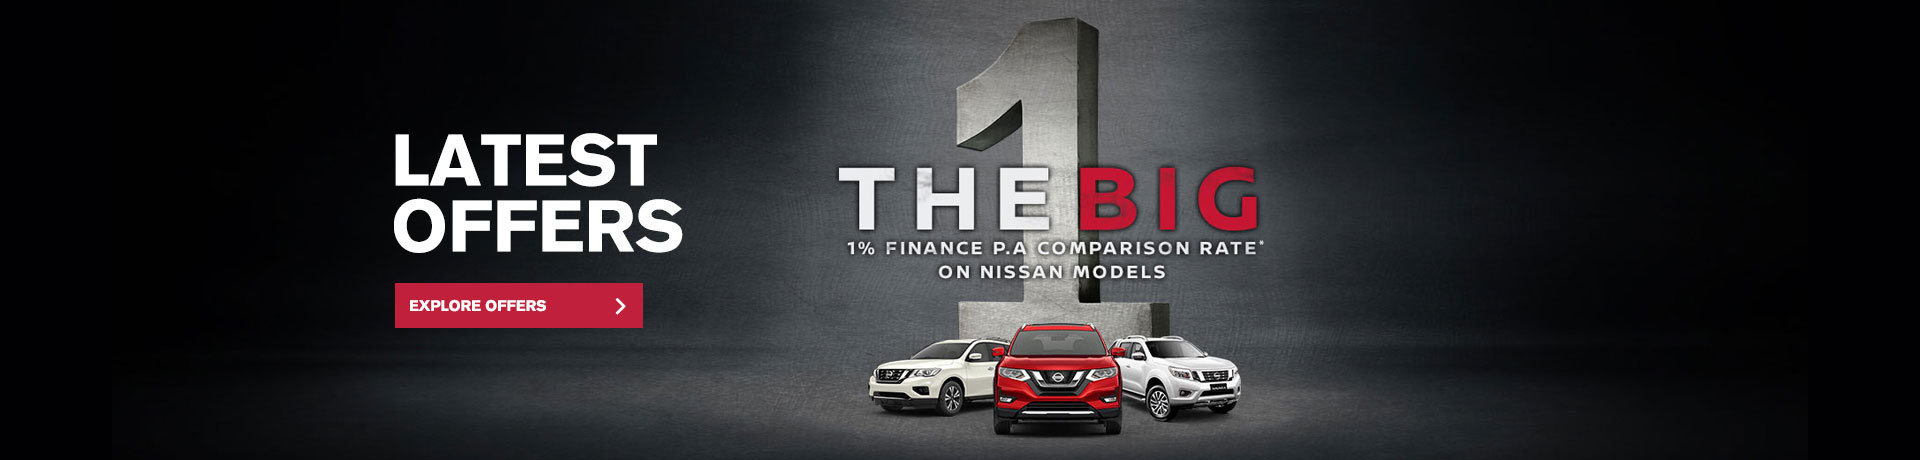 Nissan - National Offer- The Big 1 - 1% Finance PA Comparison Rate*